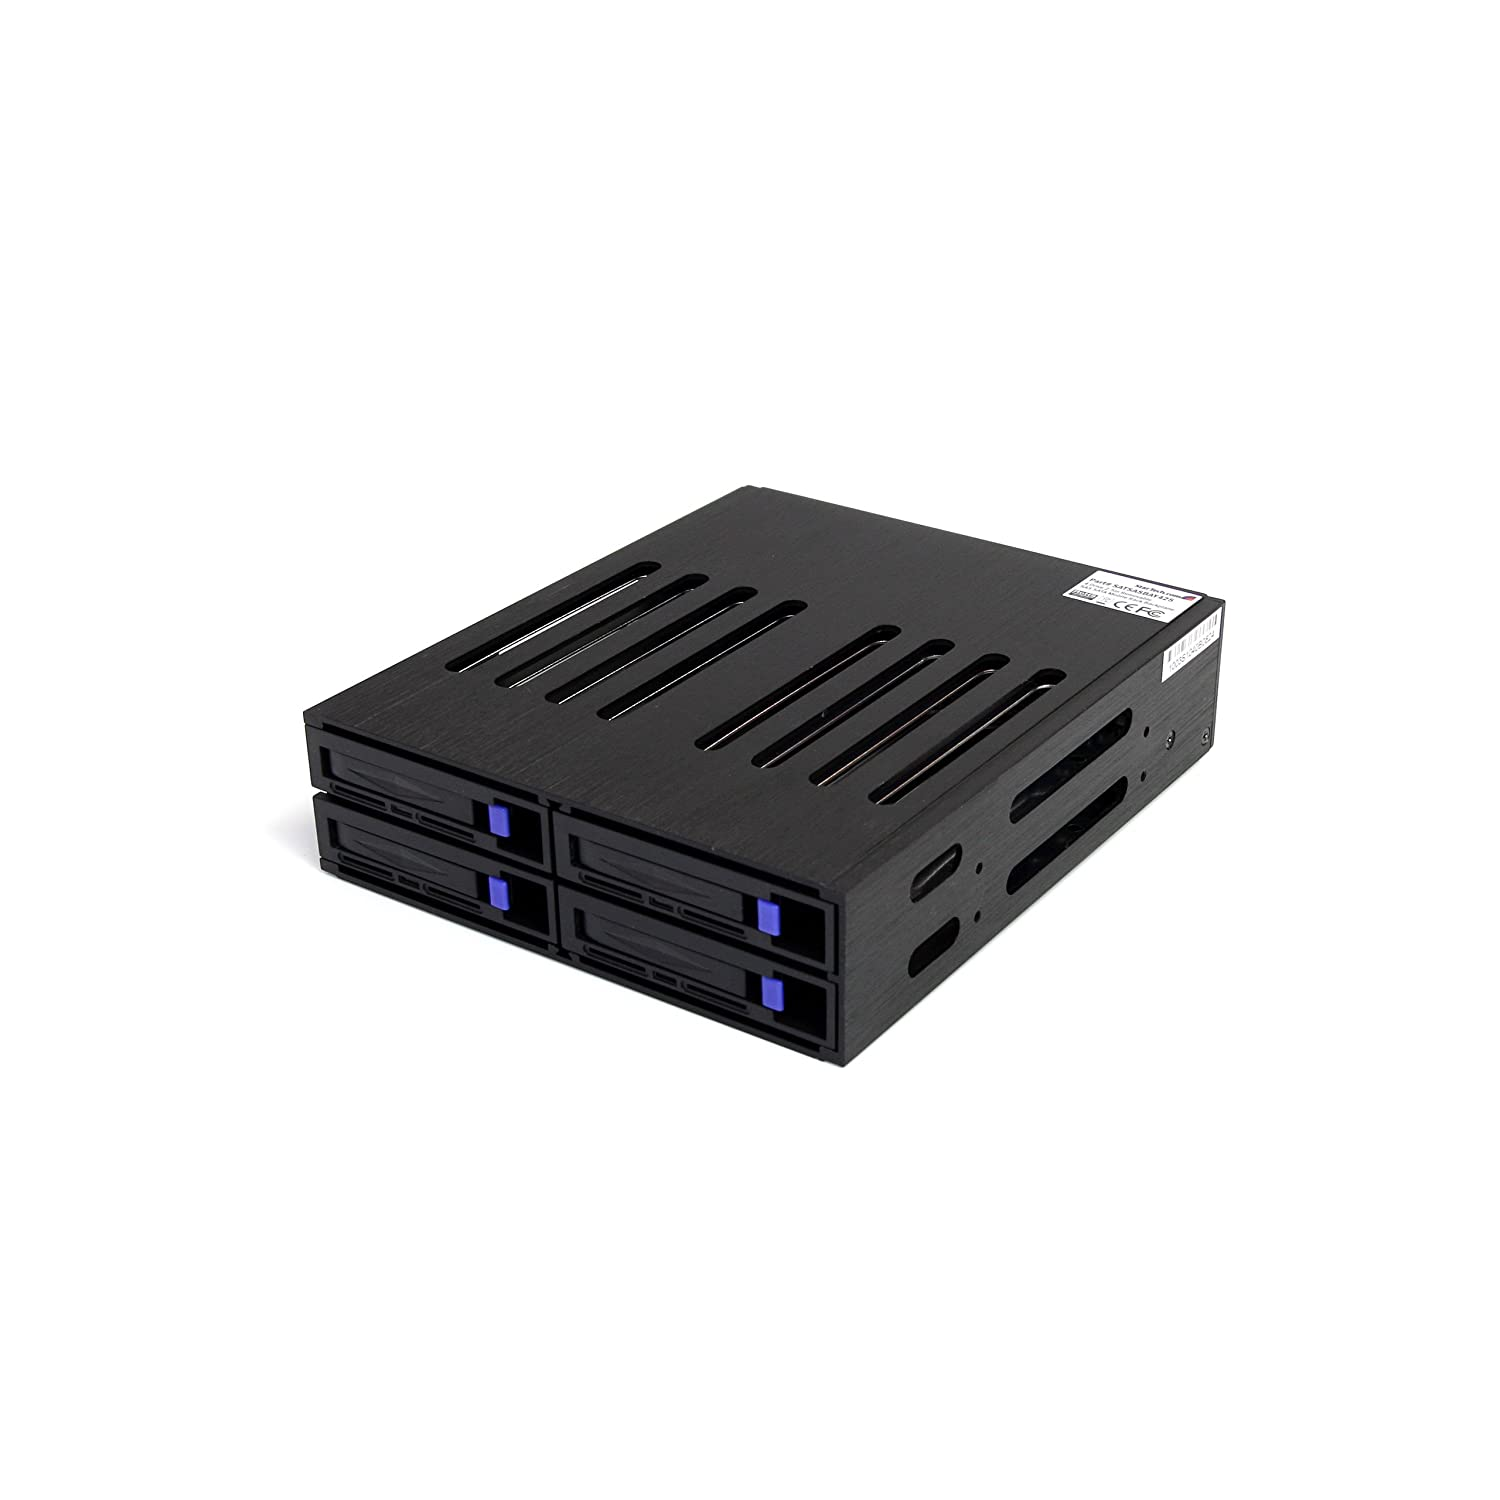 Via Amazon.com StarTech 4 port SAS / SATA enclosure